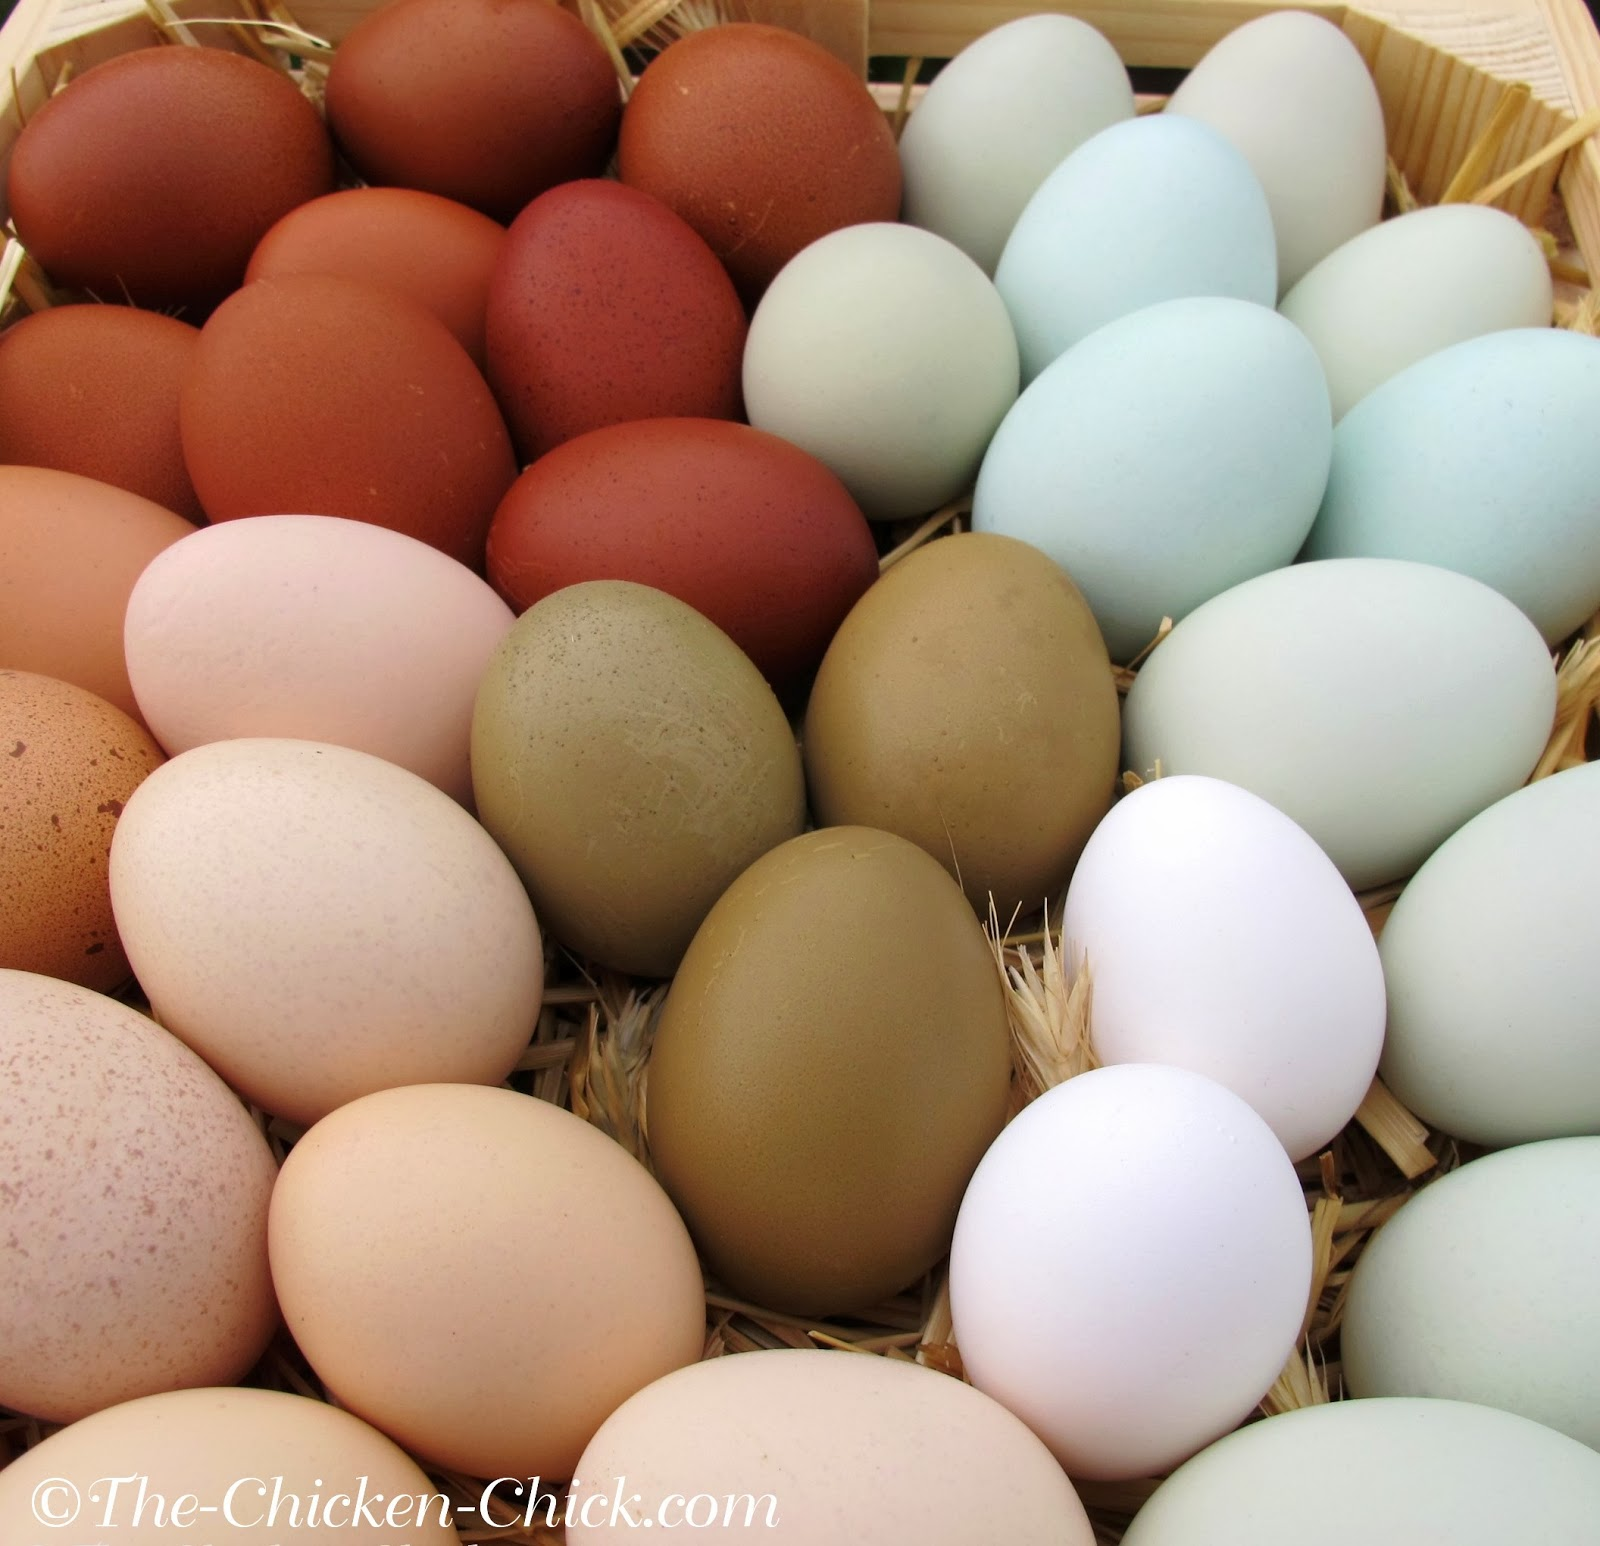 Chicken breeds for eggs - The Rate Of Egg Production Can Also Be Generalized By Breed Some Breeds Are Known